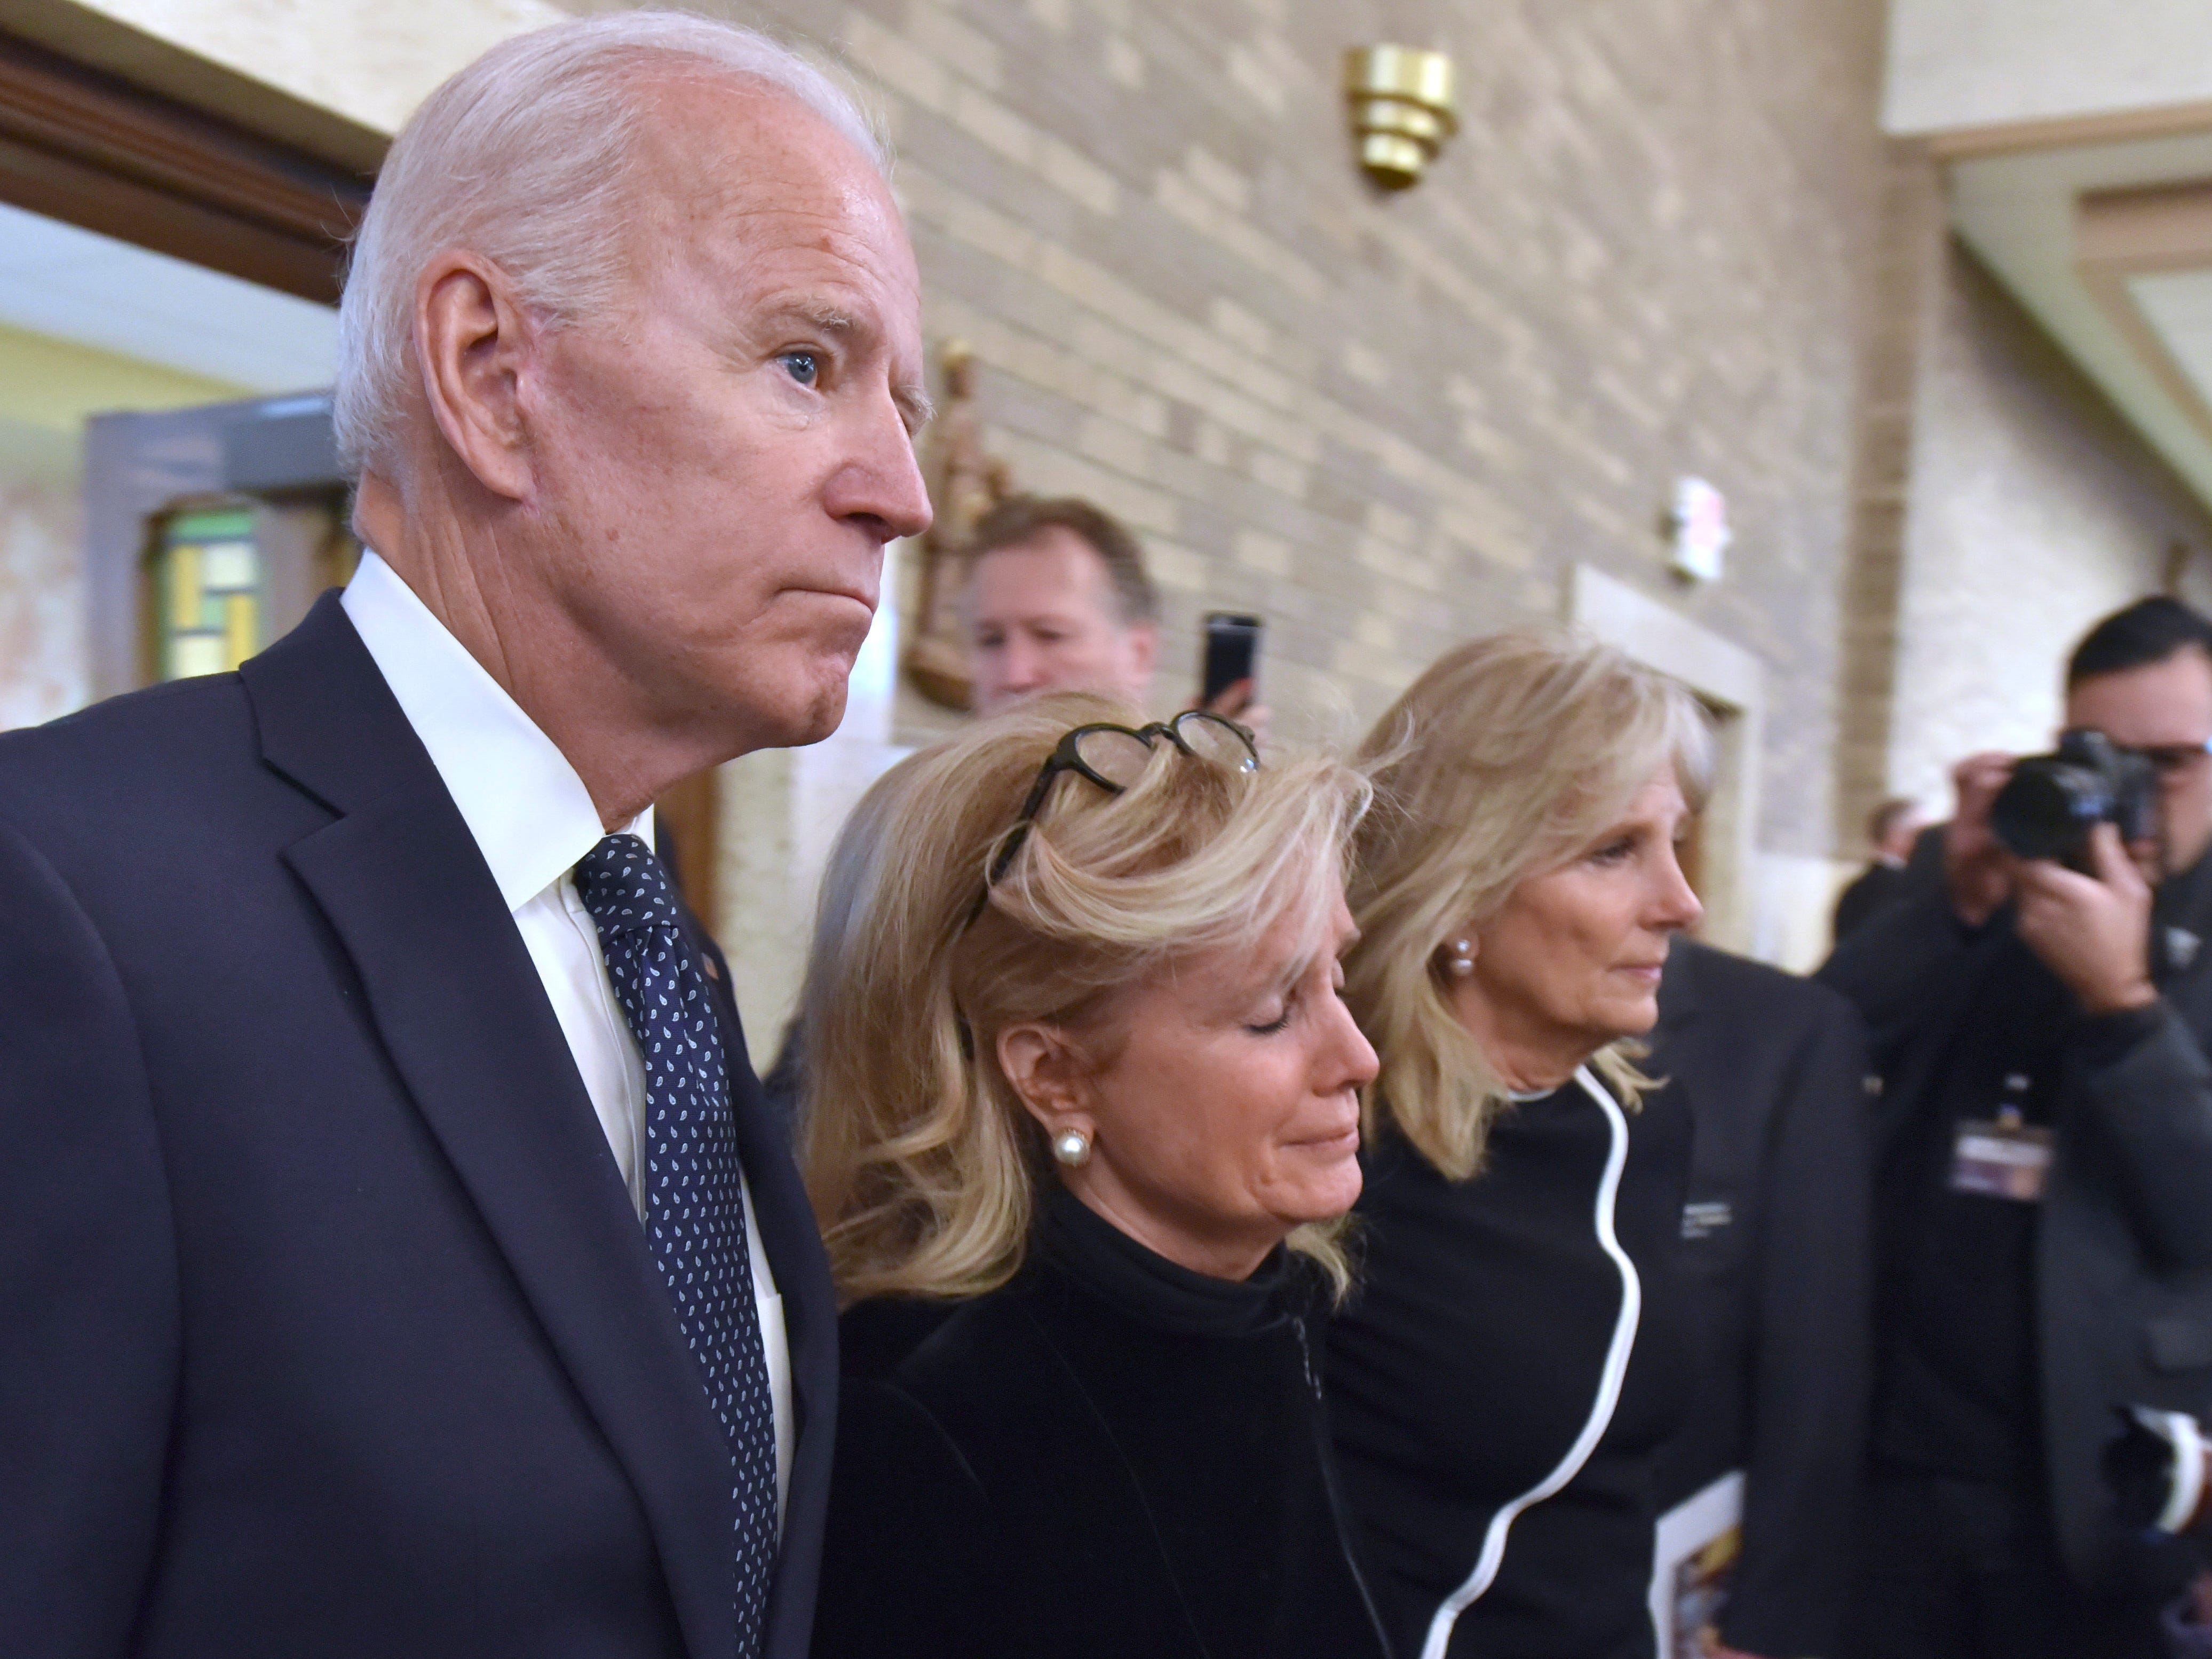 Former U.S. Vice President Joe Biden, left, escorts U.S. Rep. Debbie Dingell, center, widow of former U.S. Rep.  John Dingell, into the sanctuary at the Church of the Divine Child in Dearborn, Tuesday, Feb. 12, 2019, for Dingell's funeral service.